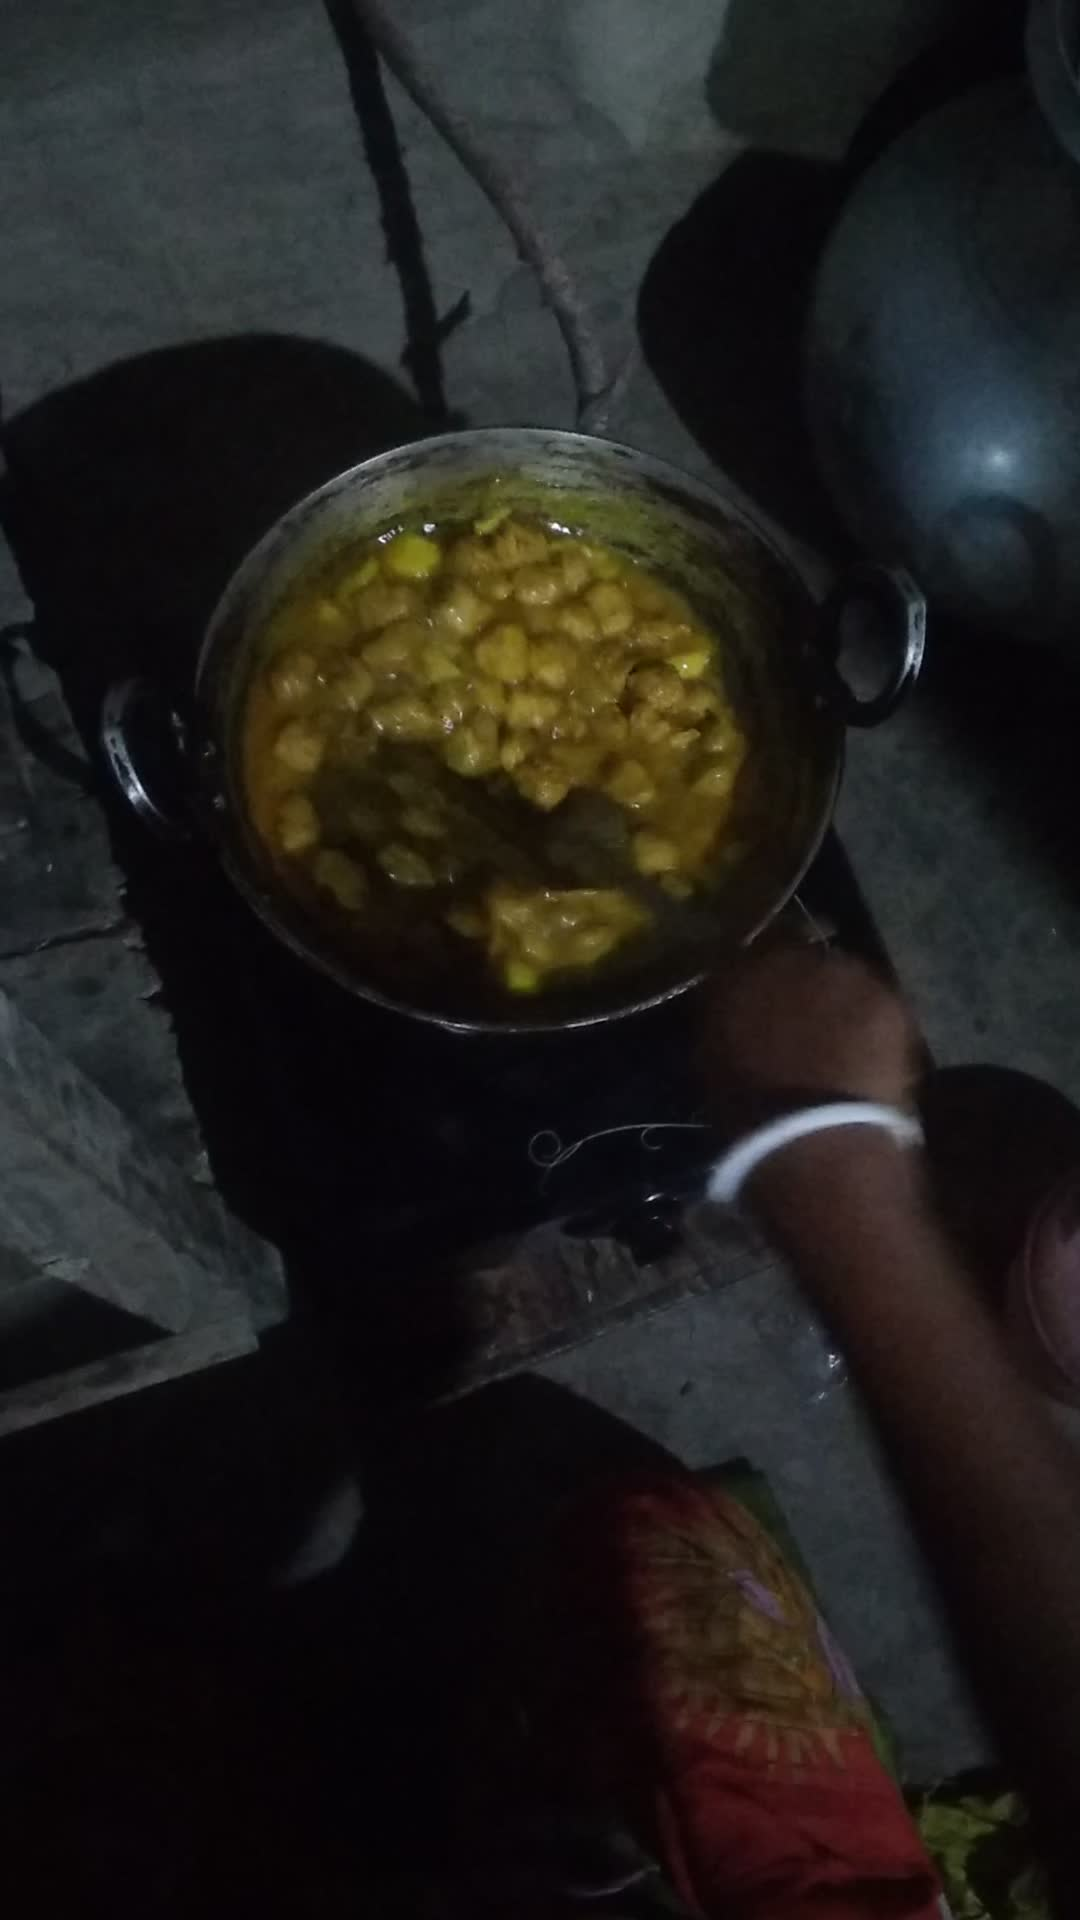 A delicious food are being Cook